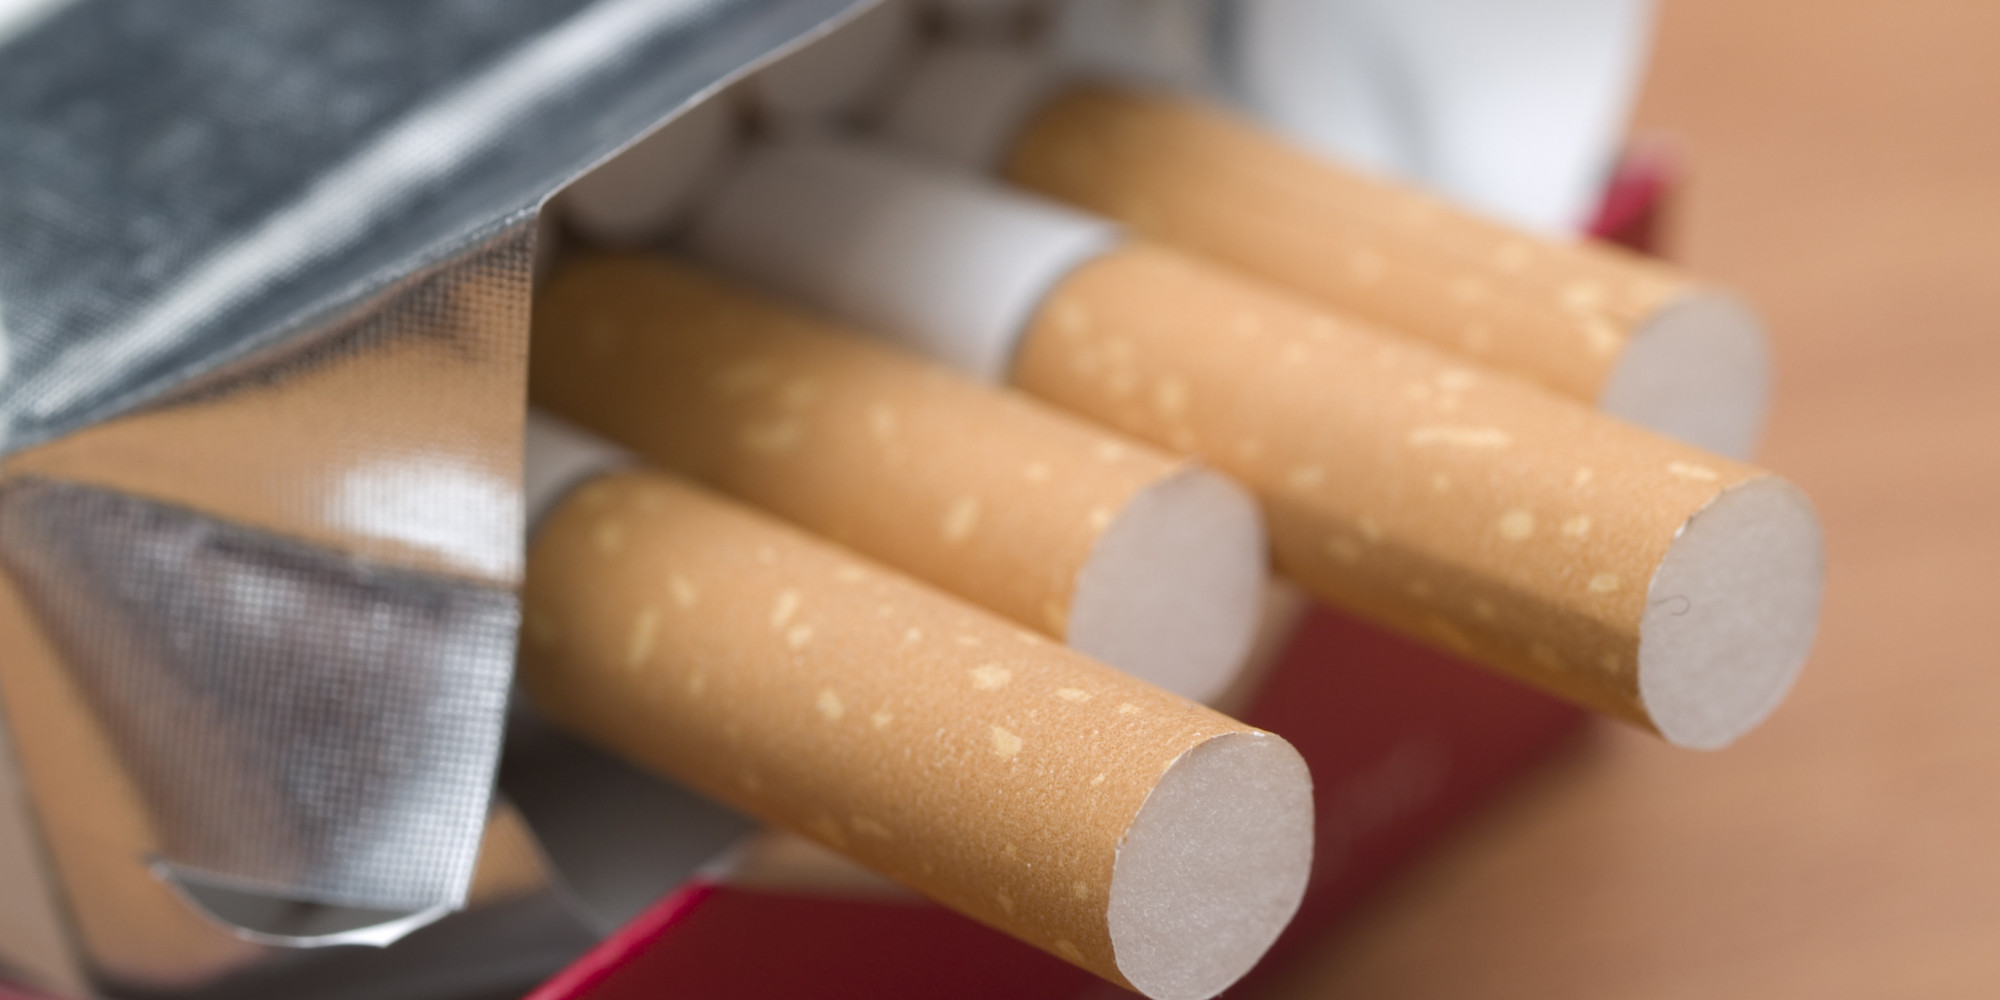 cigarette tax in the philippines Printed in the philippines isbn 978-92-9092-890-4 tobacco taxes: a win–win measure a win-win measure for fiscal space and health.